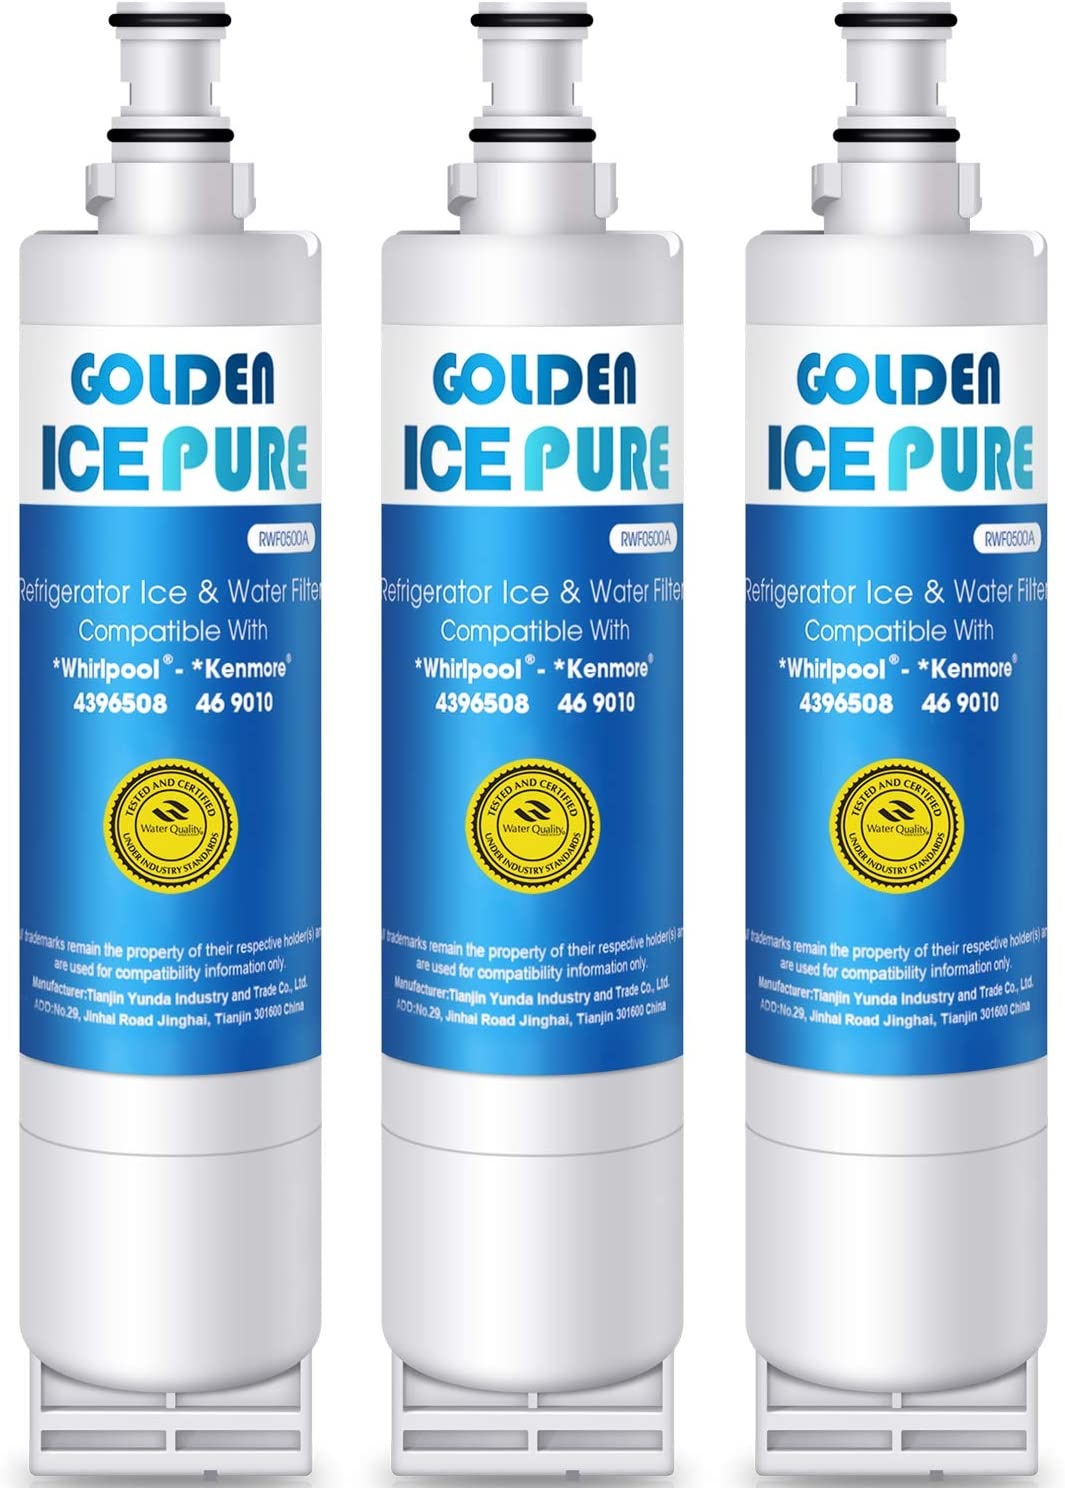 Golden Icepure 4396508 (Not-4396841) Replacement Refrigerator Water Filter,Compatible with Whirlpool 4396508,4396510,Kenmore 46-9010,EDR5RXD1,NLC240V(3-Pack)